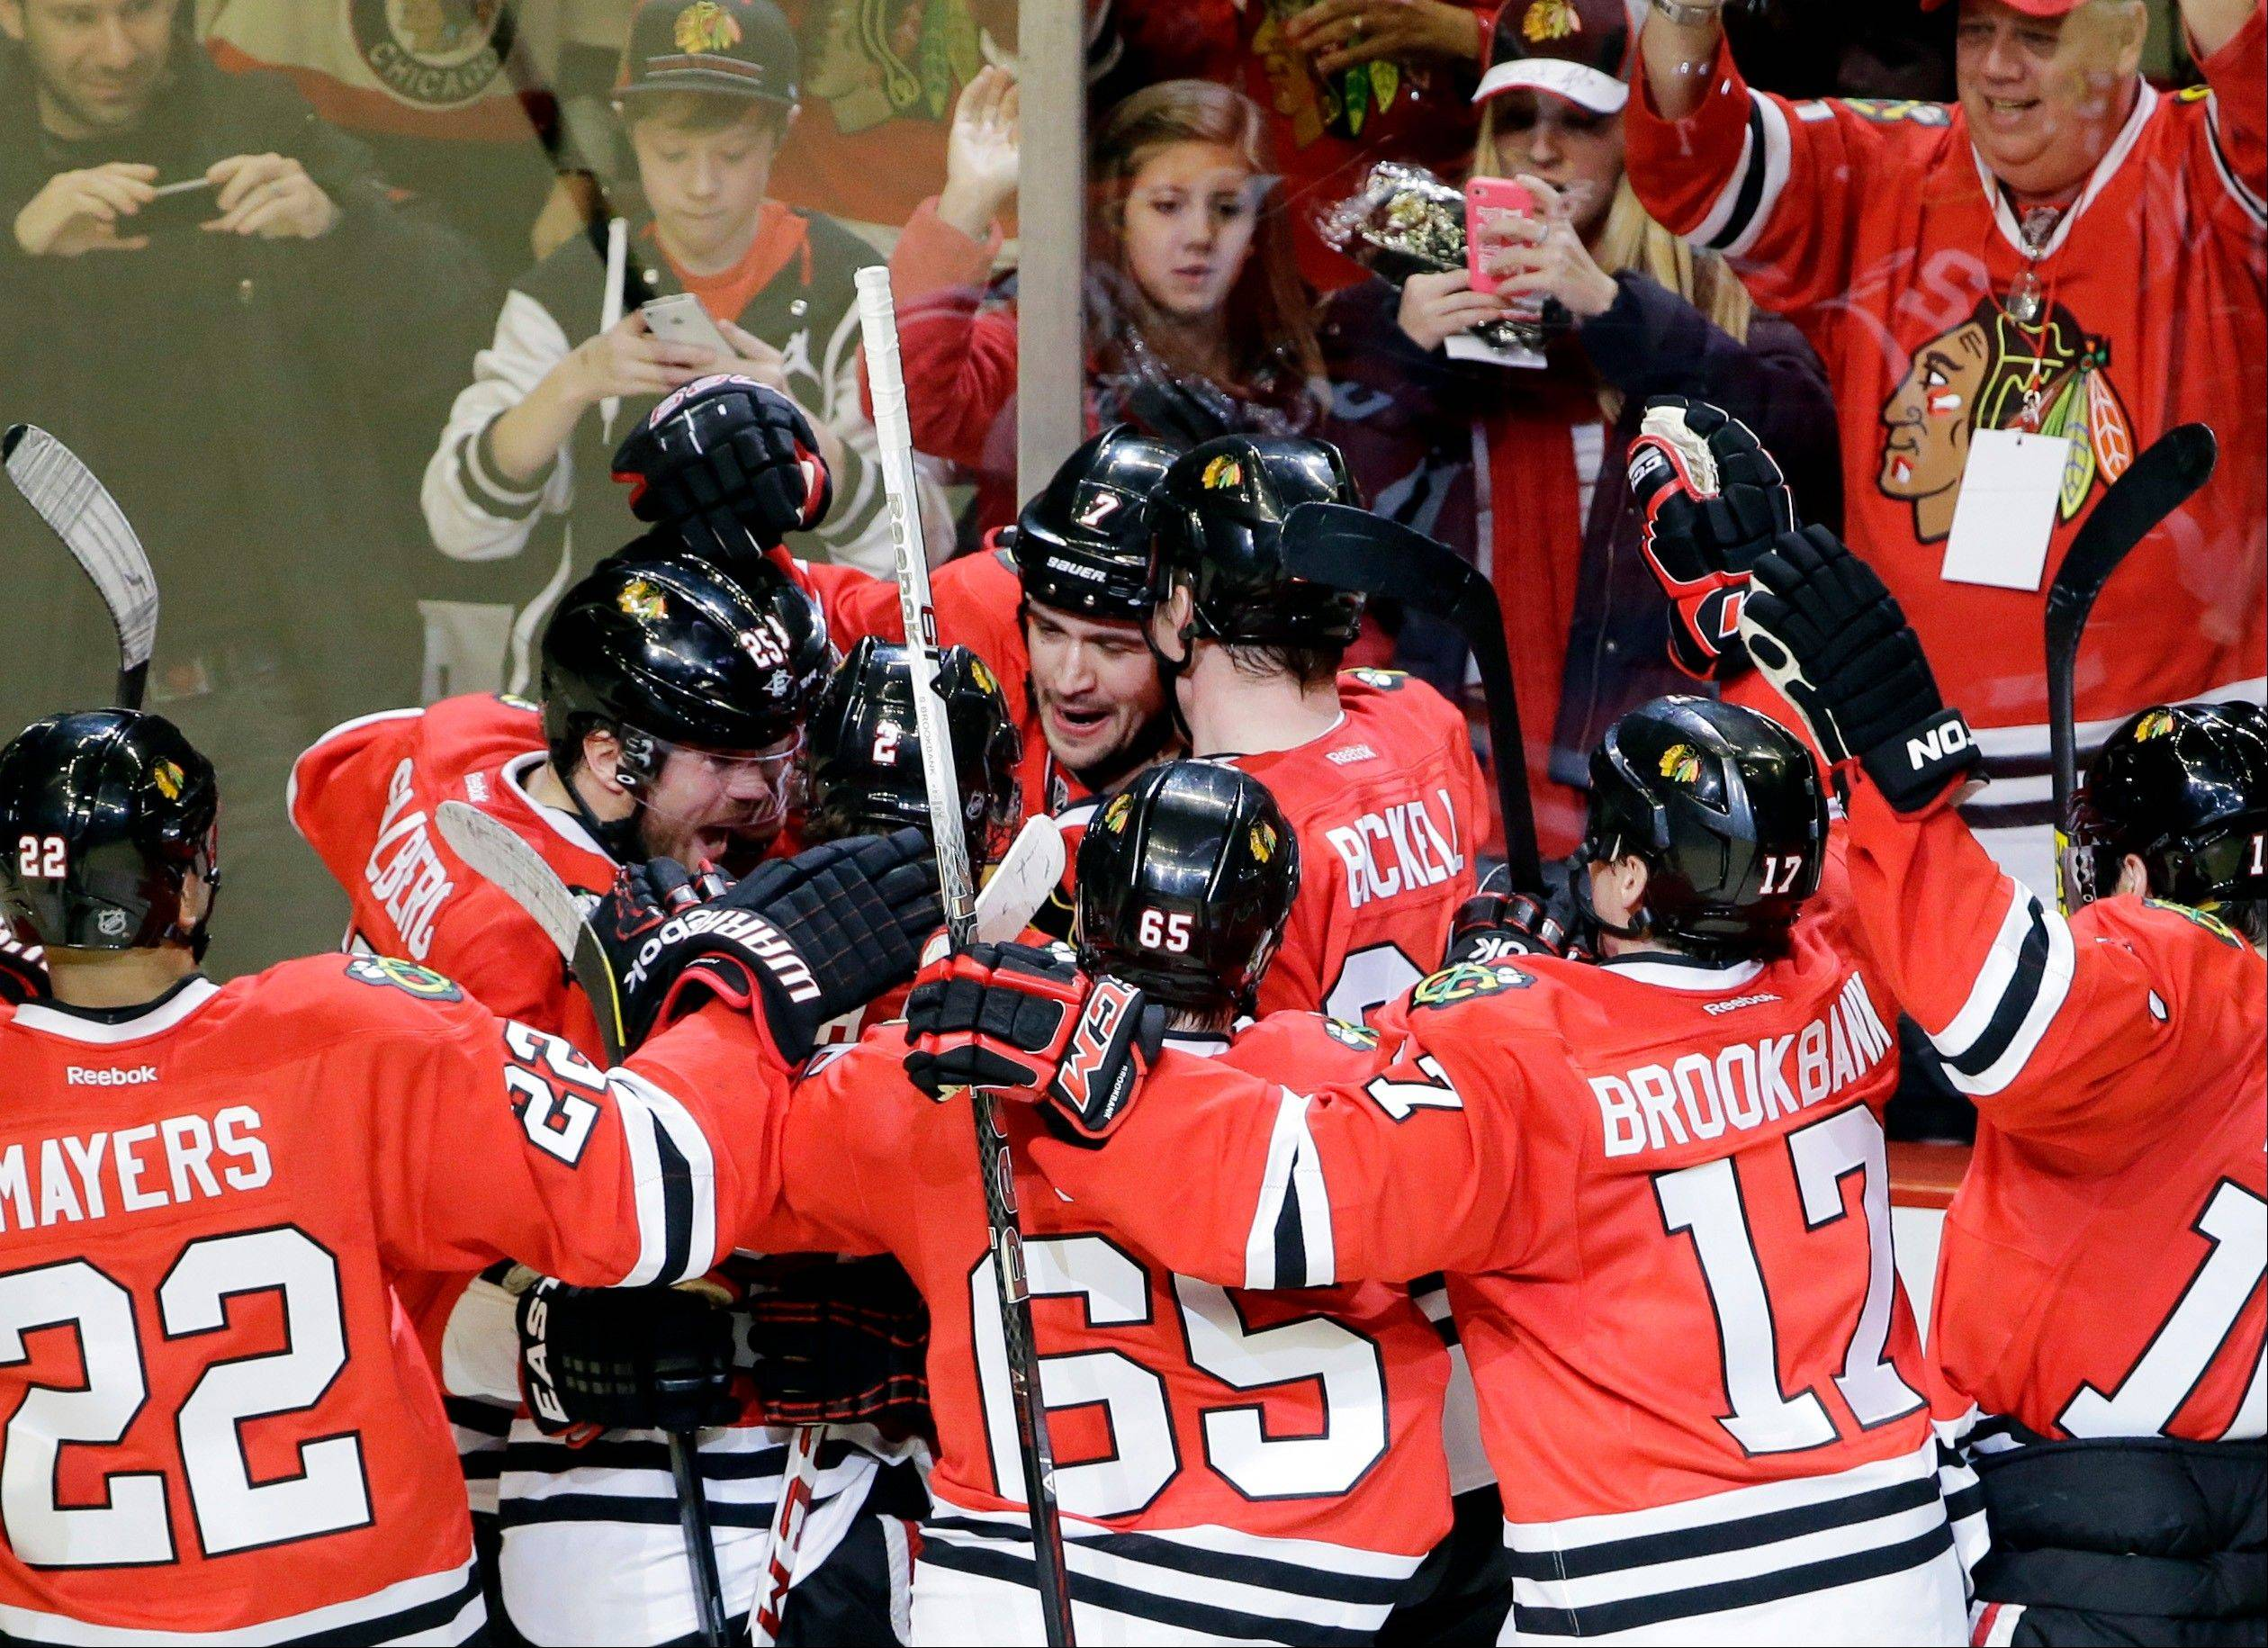 National media catches up with Blackhawks